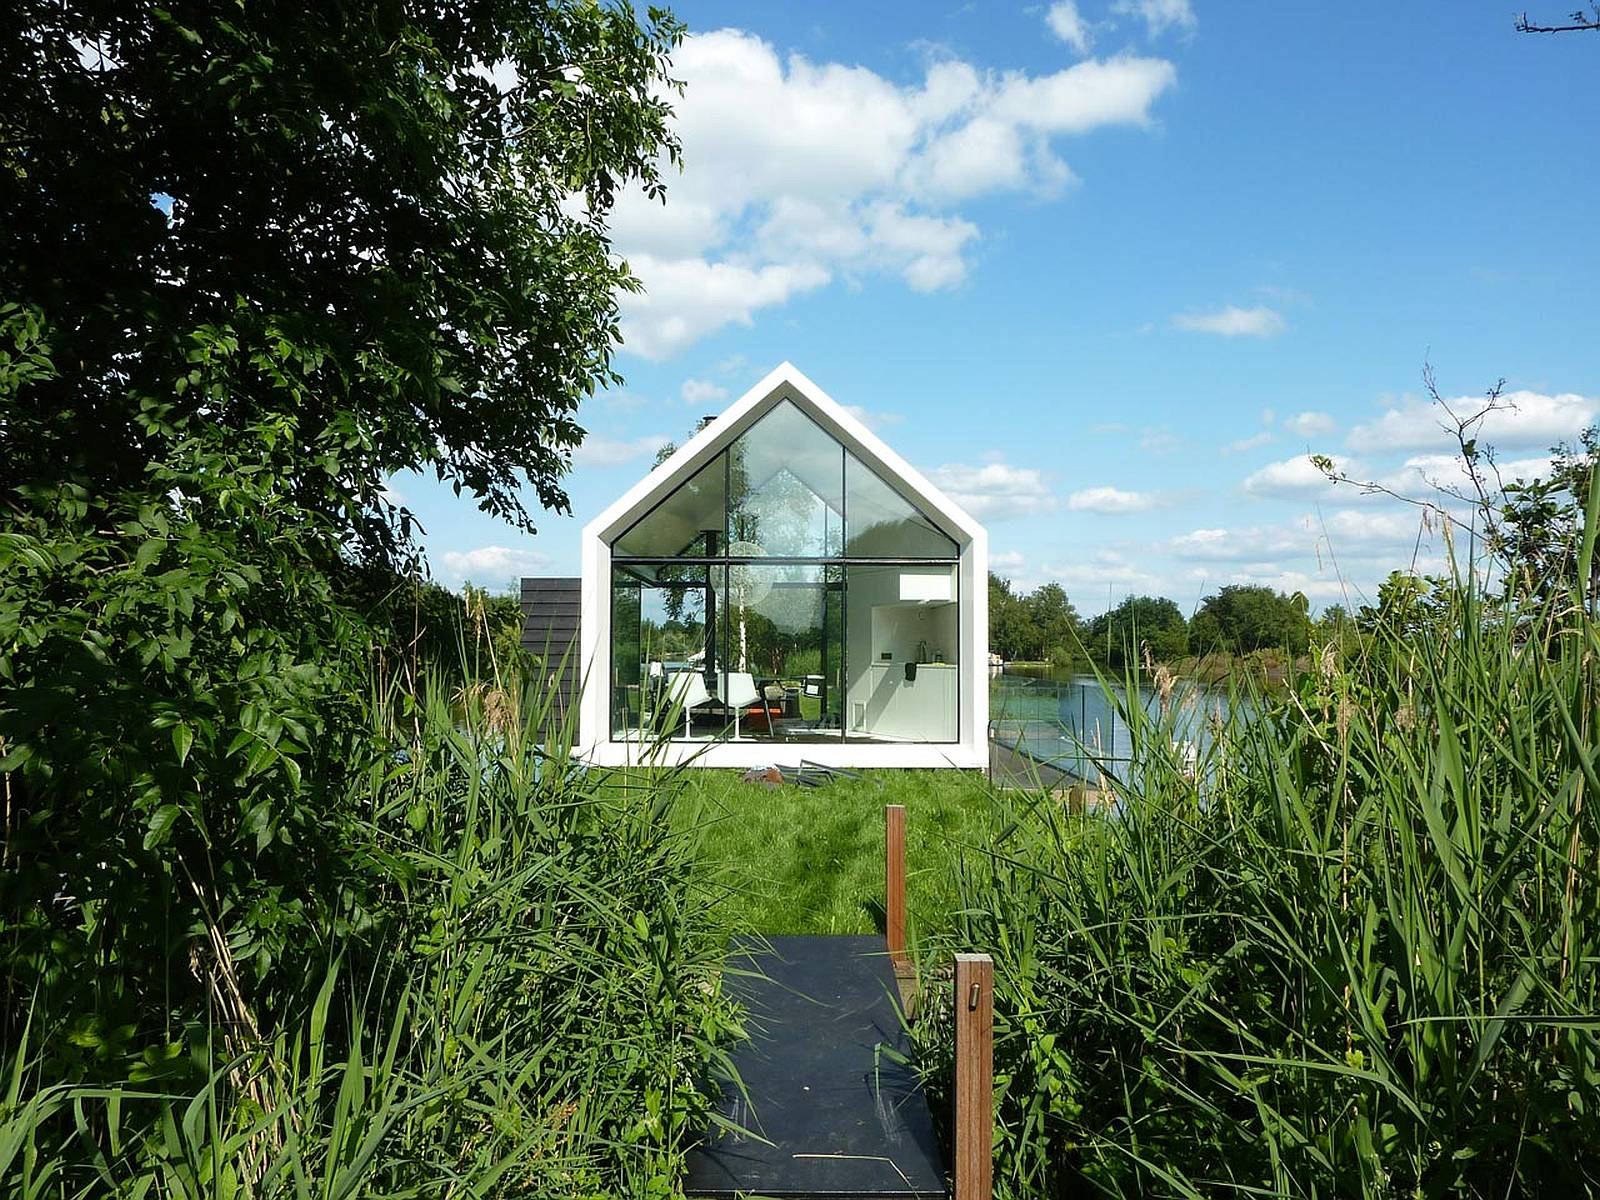 Island house 2by4 architects small house bliss for Tiny house architects